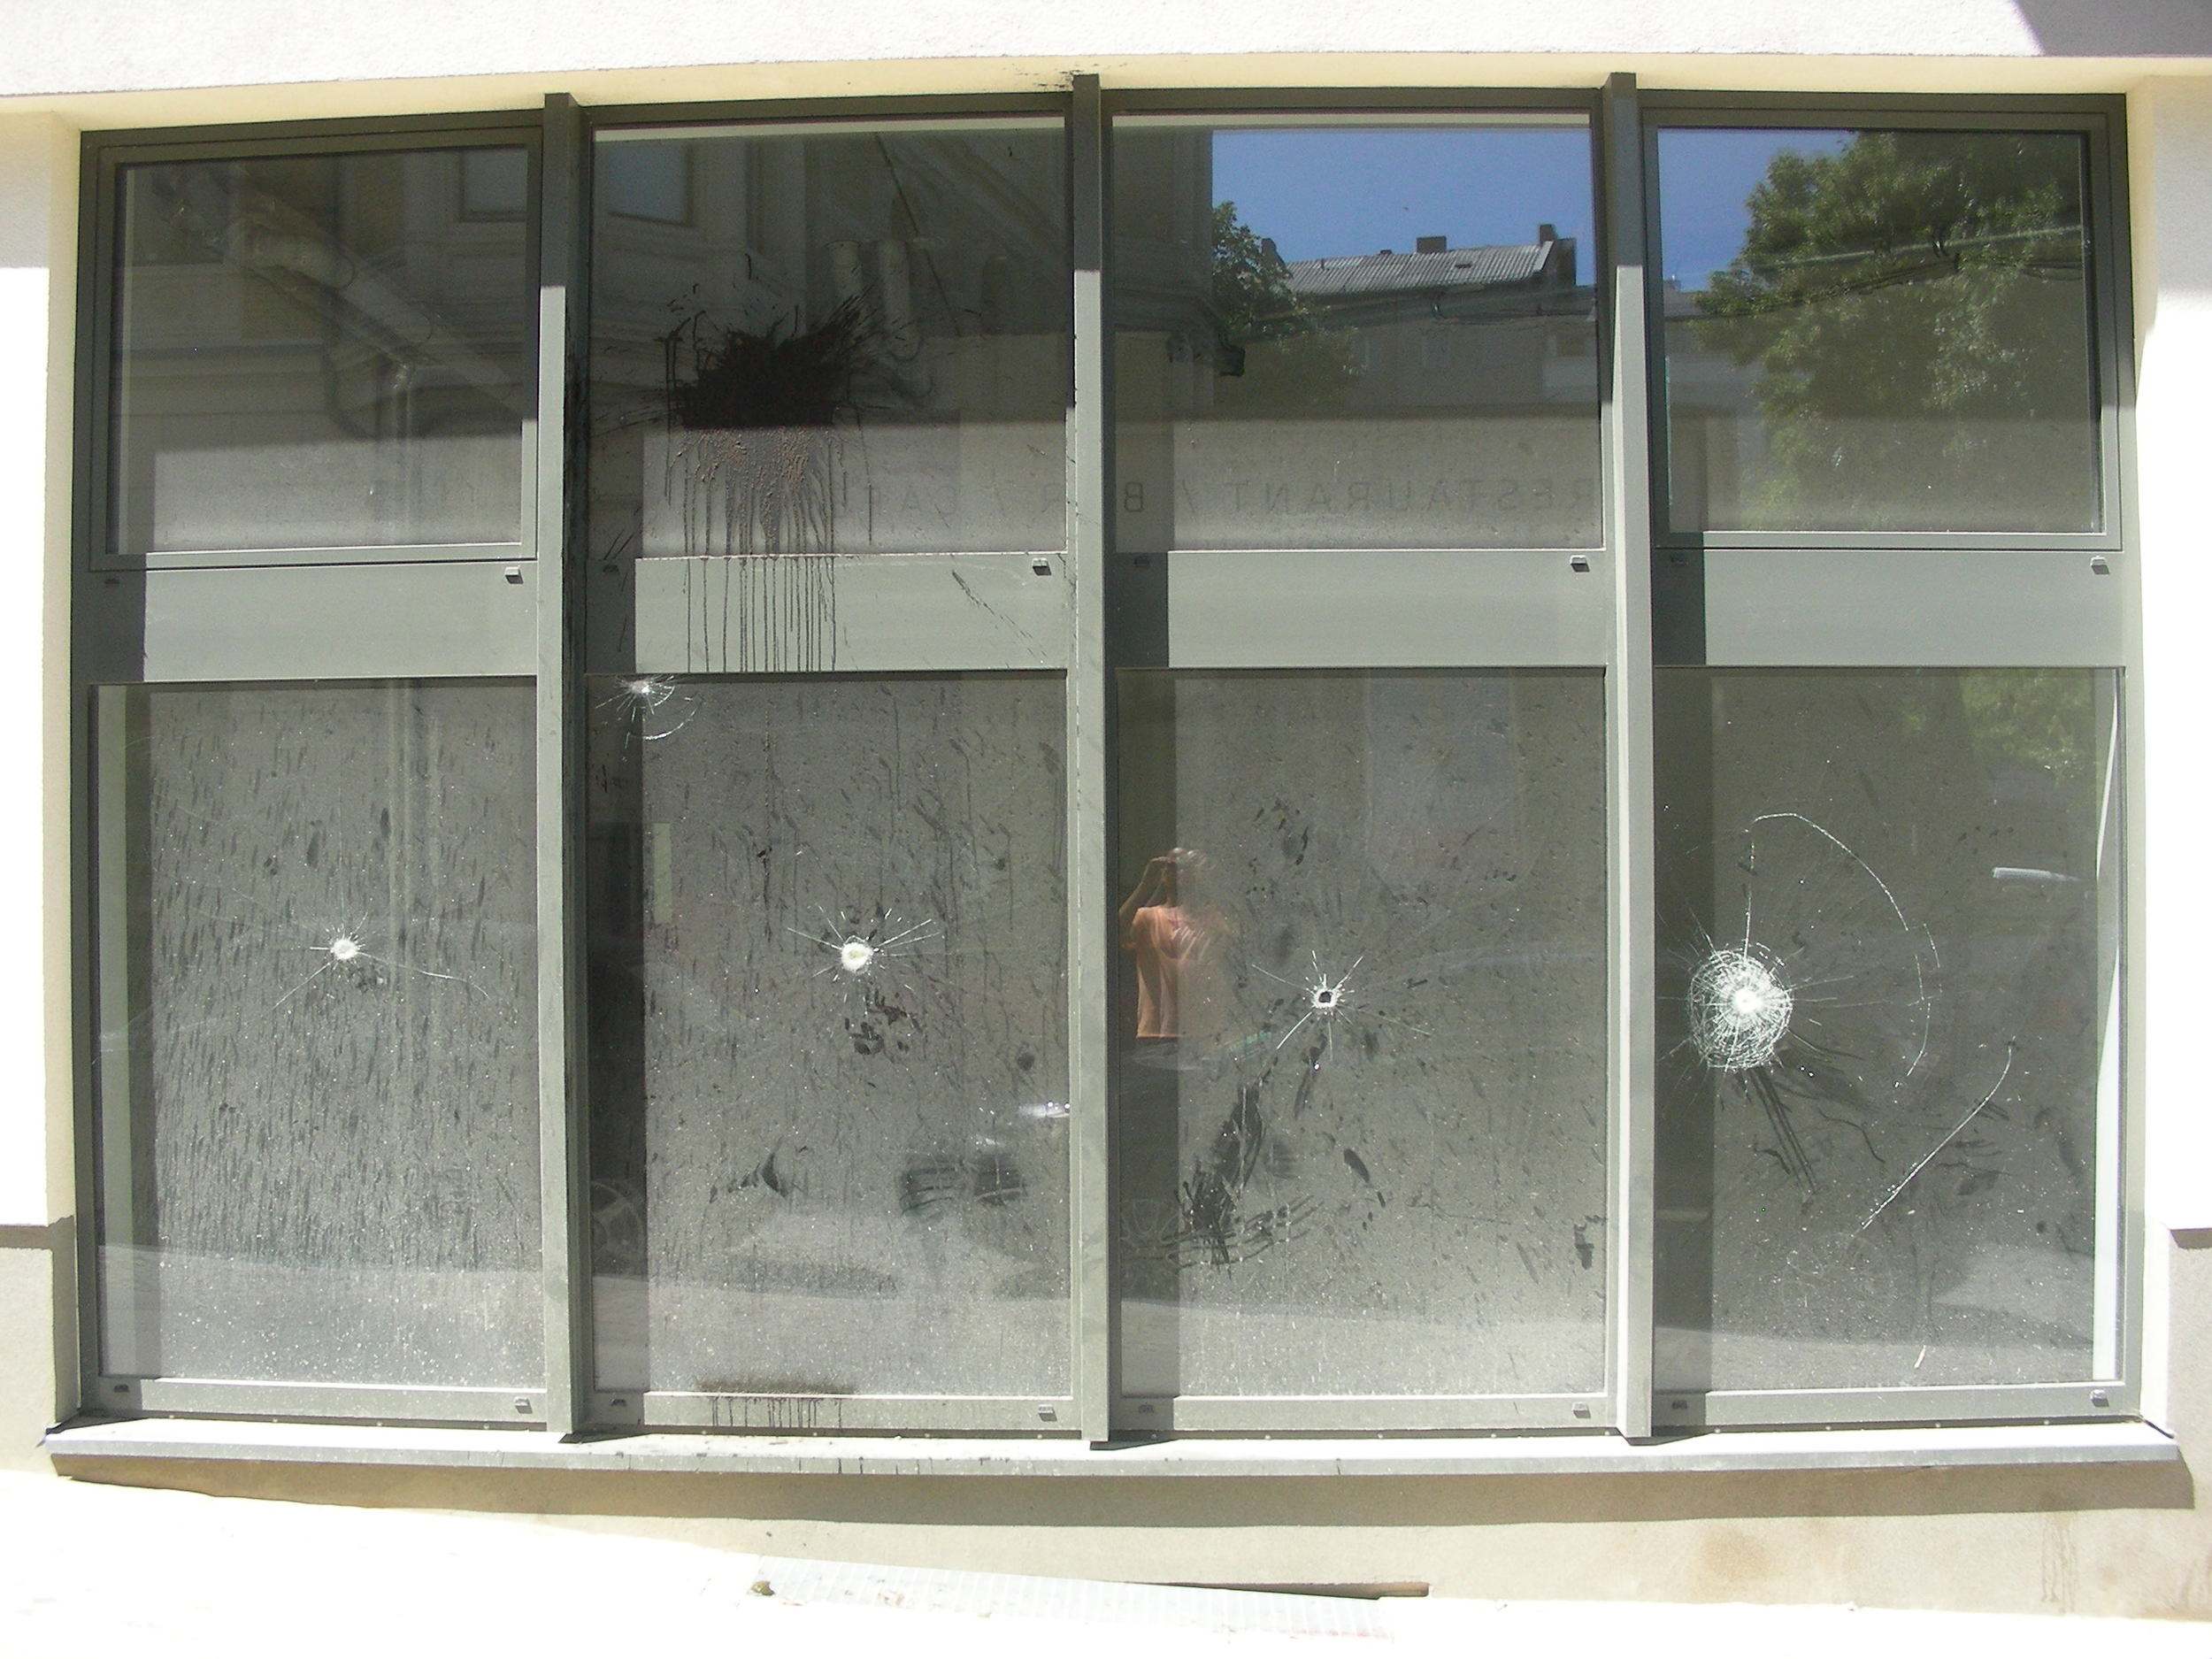 Smashed ground floor windows.